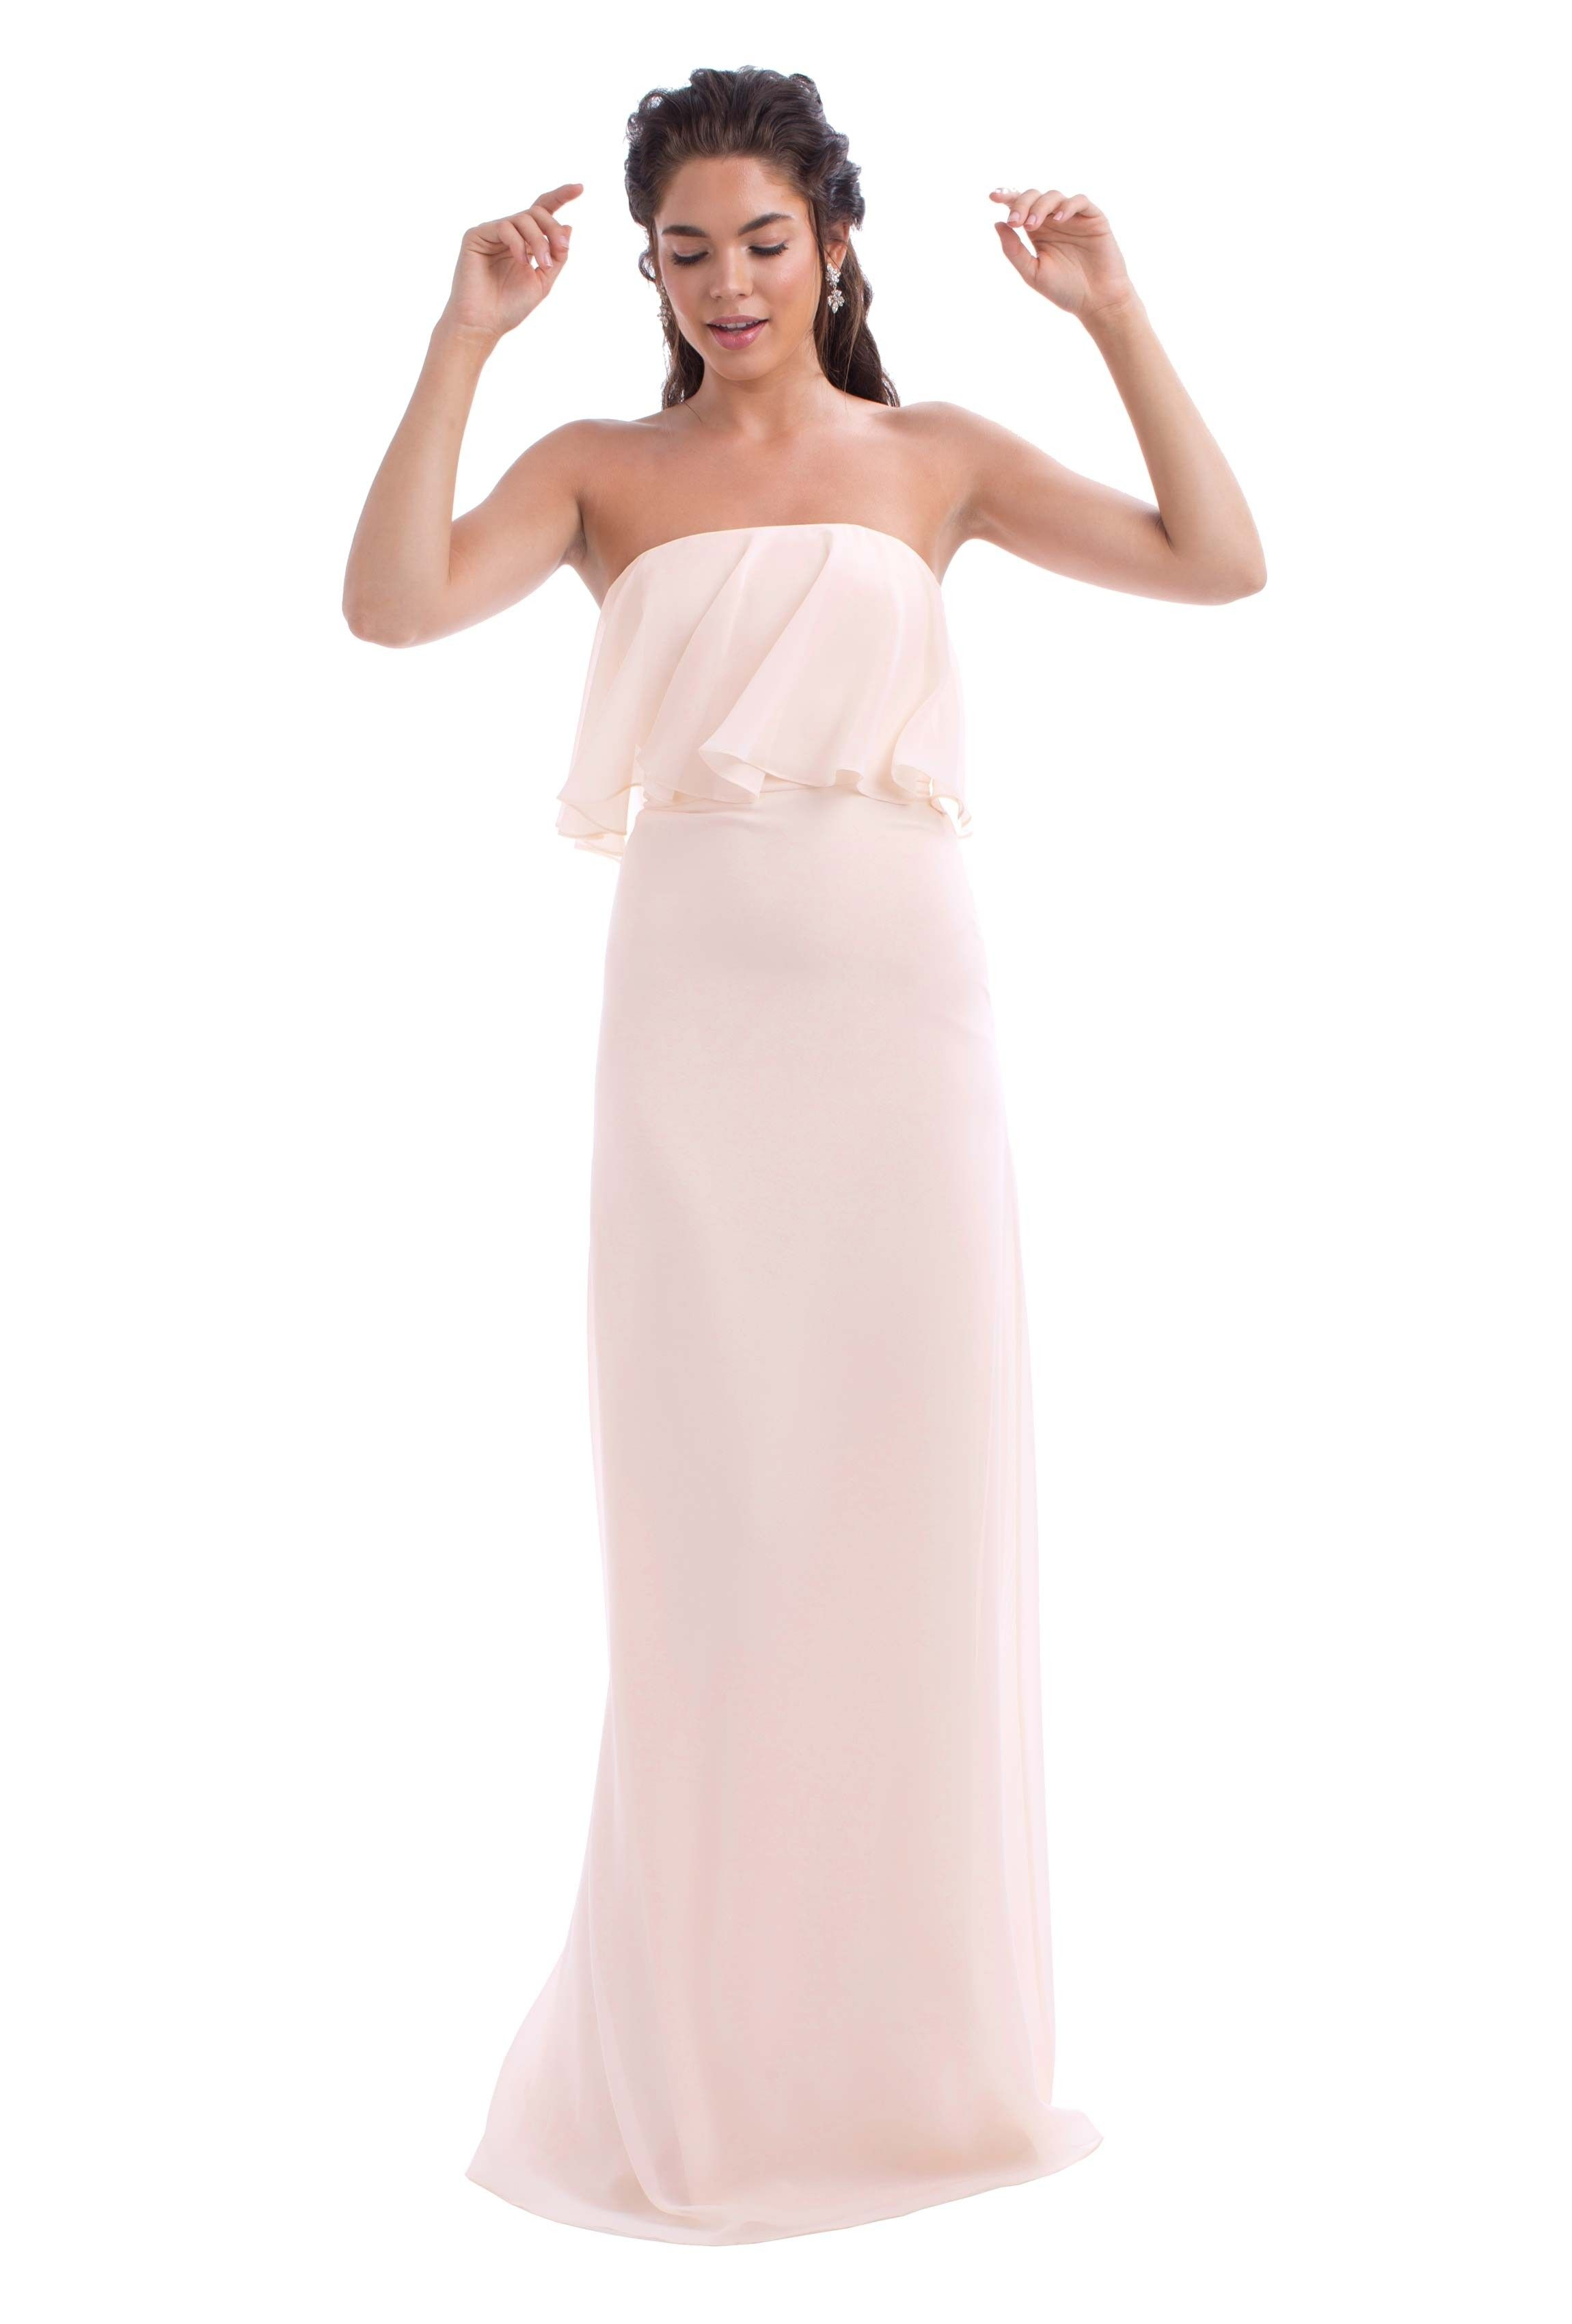 Monique lhuillier cara to be vows and uxui designer a floor length strapless chiffon bridesmaid dress with ruffle detail in seven colors ombrellifo Image collections